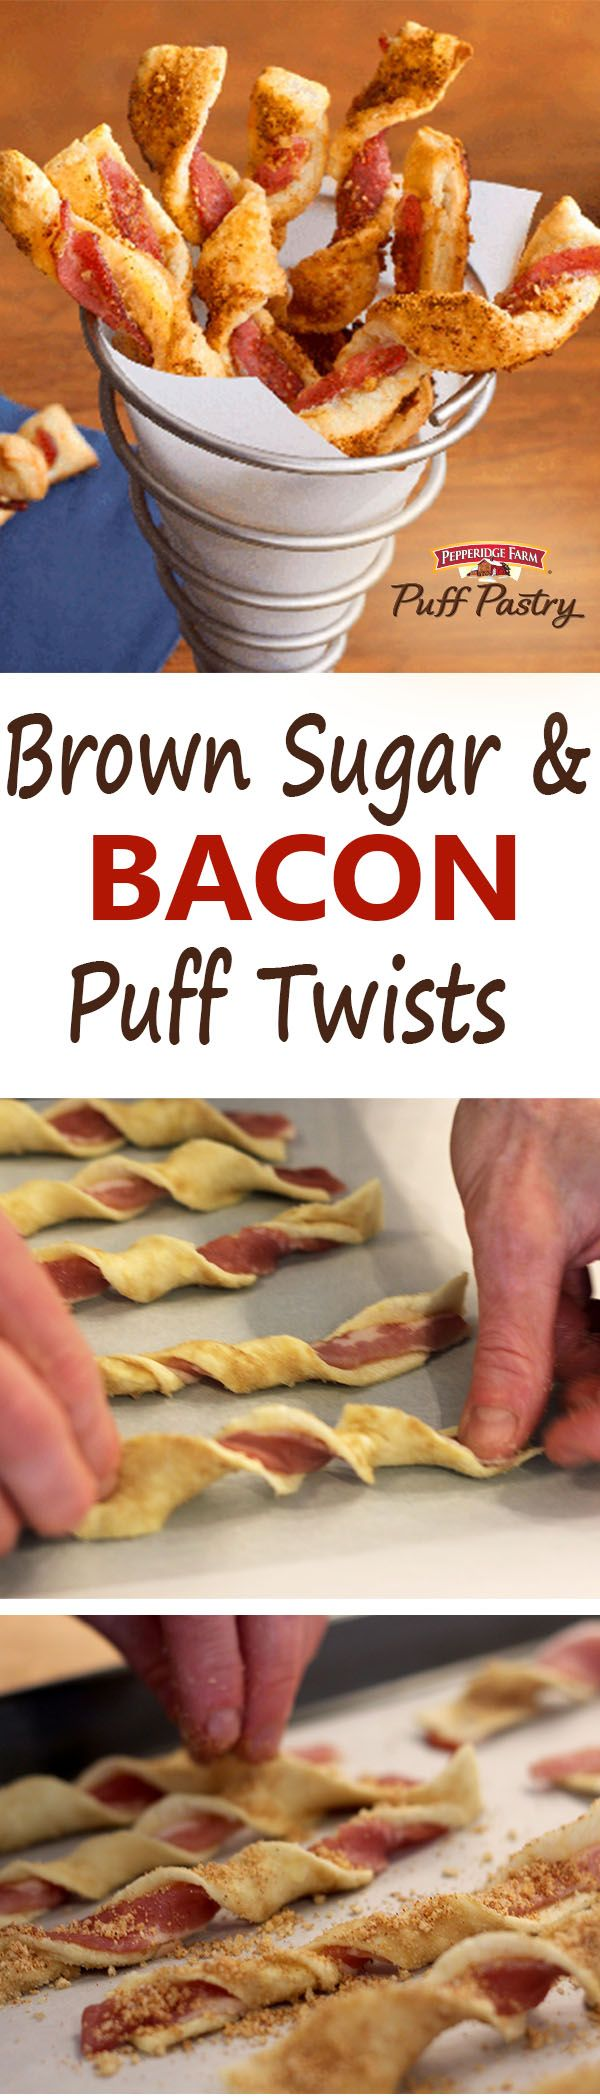 Brown Sugar & Bacon Puff Pastry Twists Recipe. When in doubt, serve bacon! Delight your party guests with these Puff Pastry twists featuring bacon, brown sugar and some kicked-up Parmesan cheese. They're a distinctive, delicious and flavorful appetizer – and will surely be a hit at your holiday gathering!